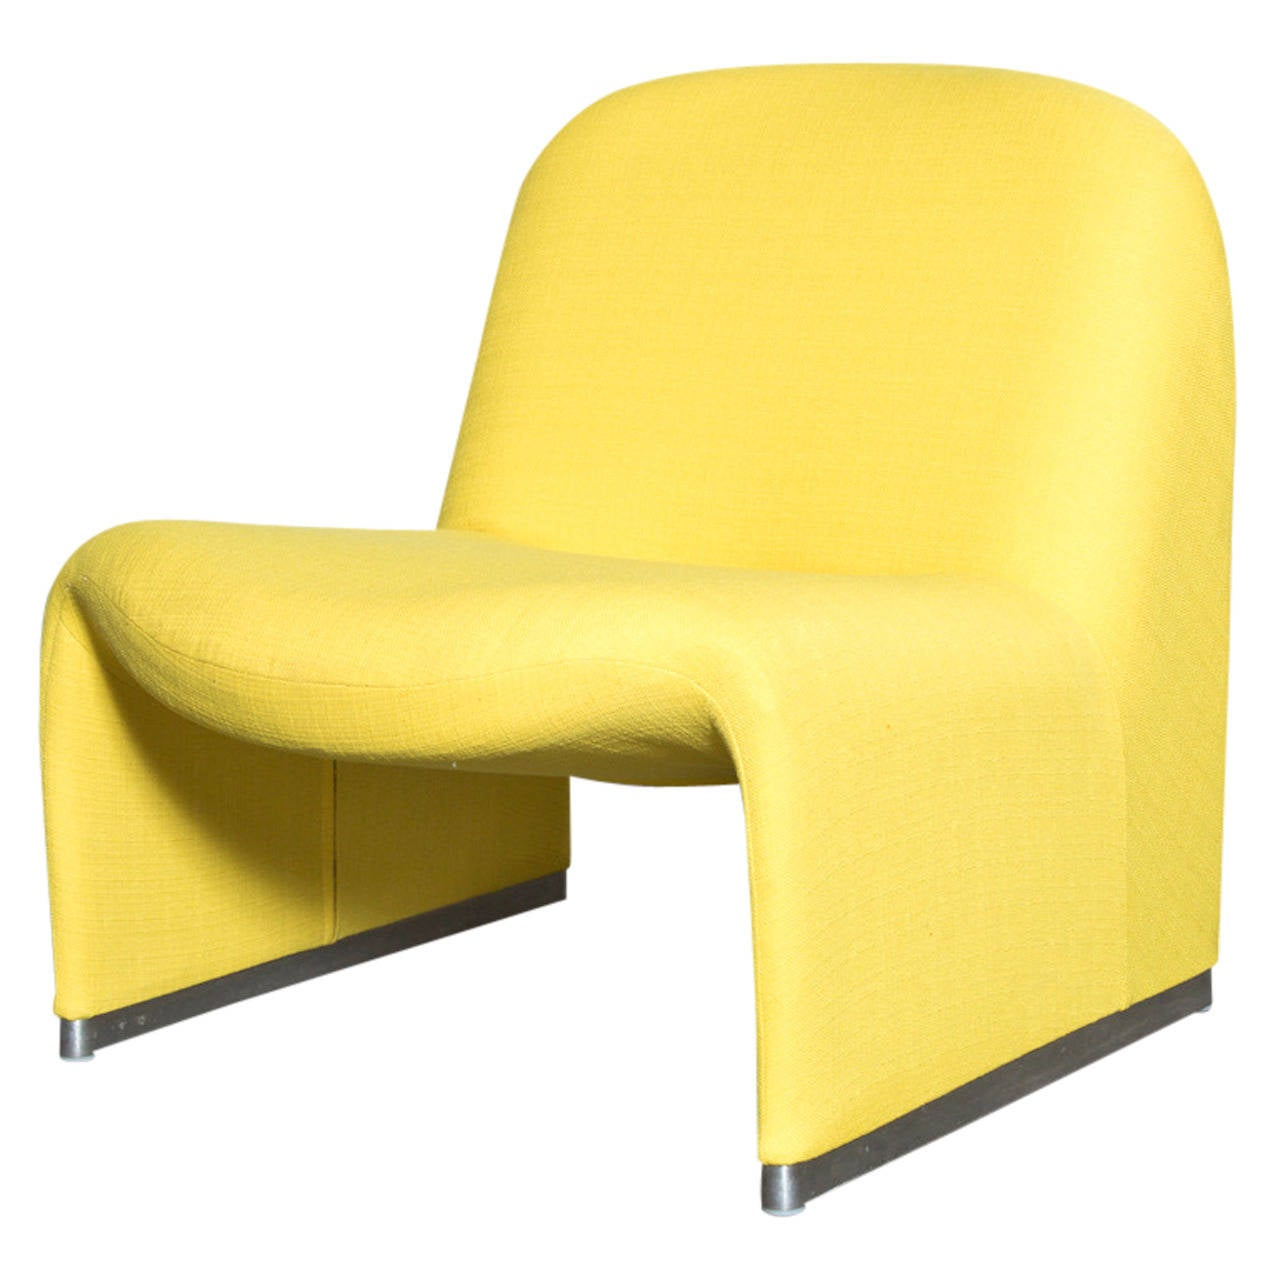 Piretti Alky Lounge Chair by Castelli in Yellow at 1stdibs